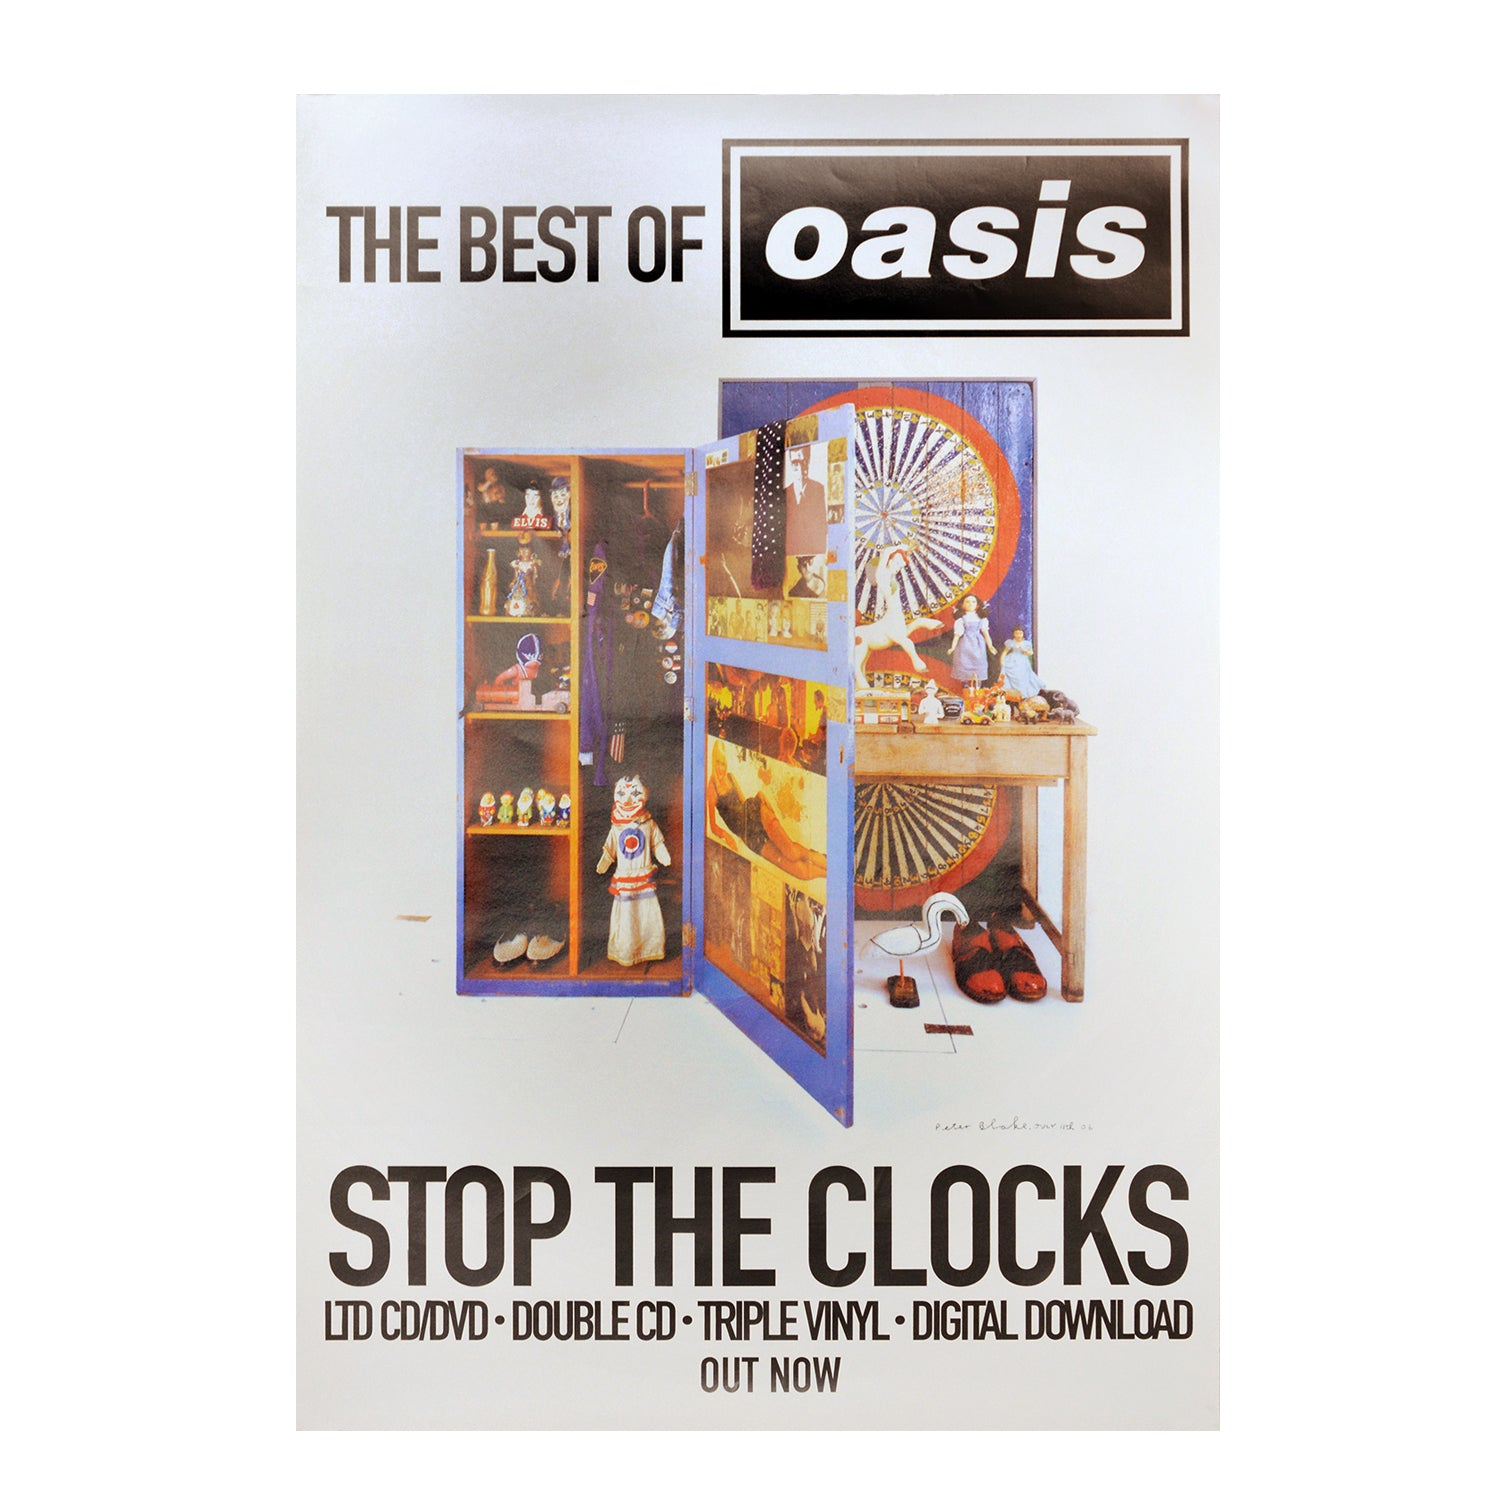 Original poster: Stop The Clocks. Oasis (small format)